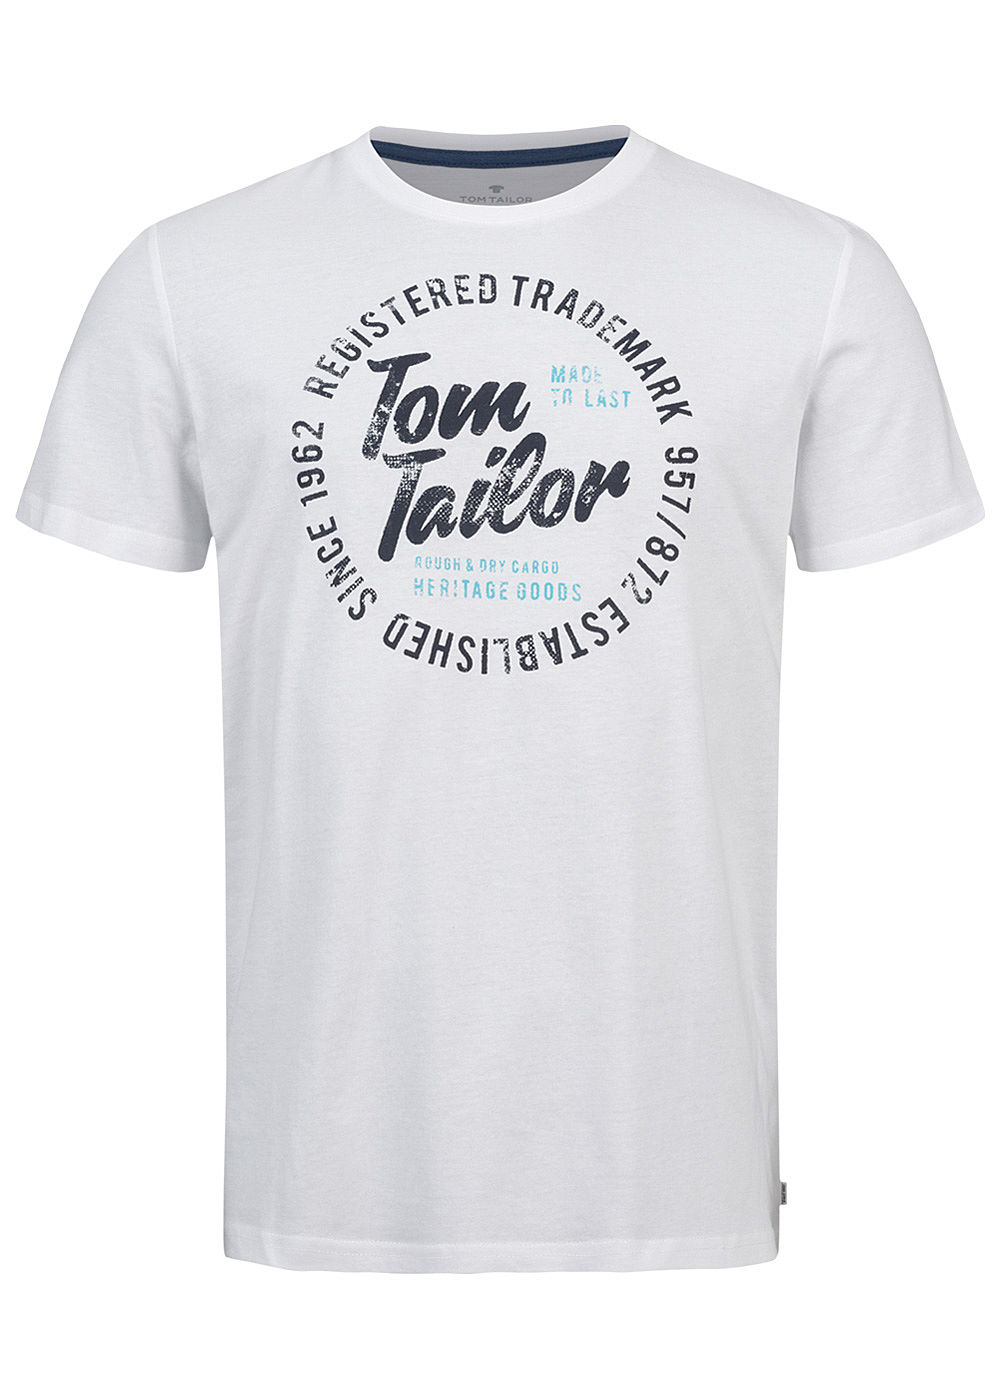 Tom Tailor Herren T-Shirt Logo Print Kursiv weiss - Art.-Nr.: 20094229